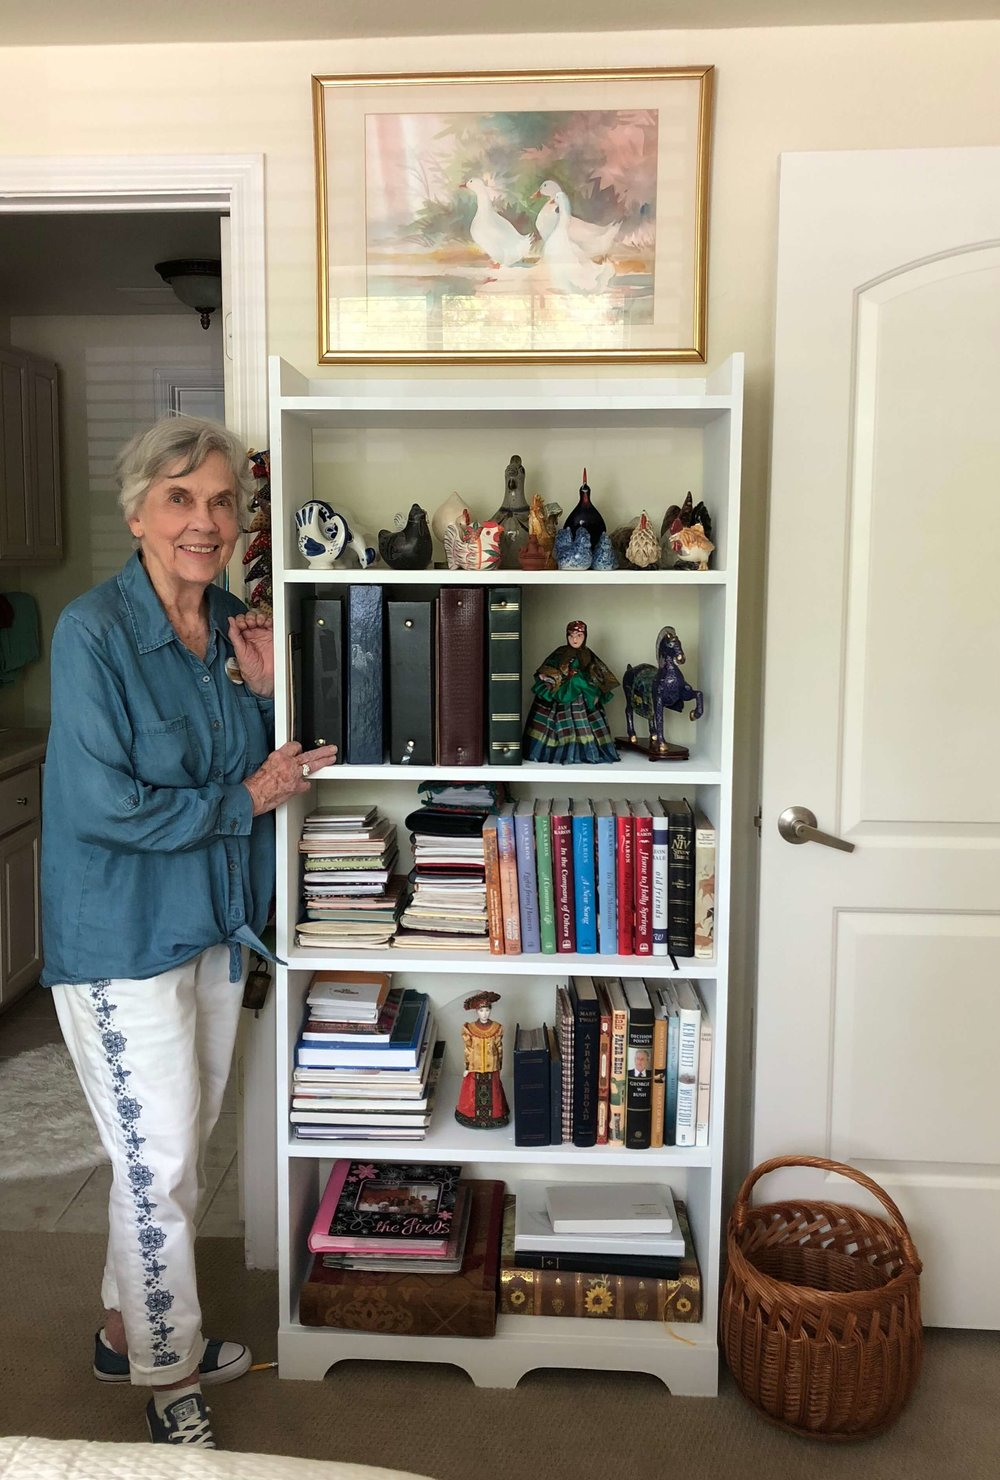 My MIL with the bookcase made for her by a family member to fit this wall space in her new apartment | Senior retirement living